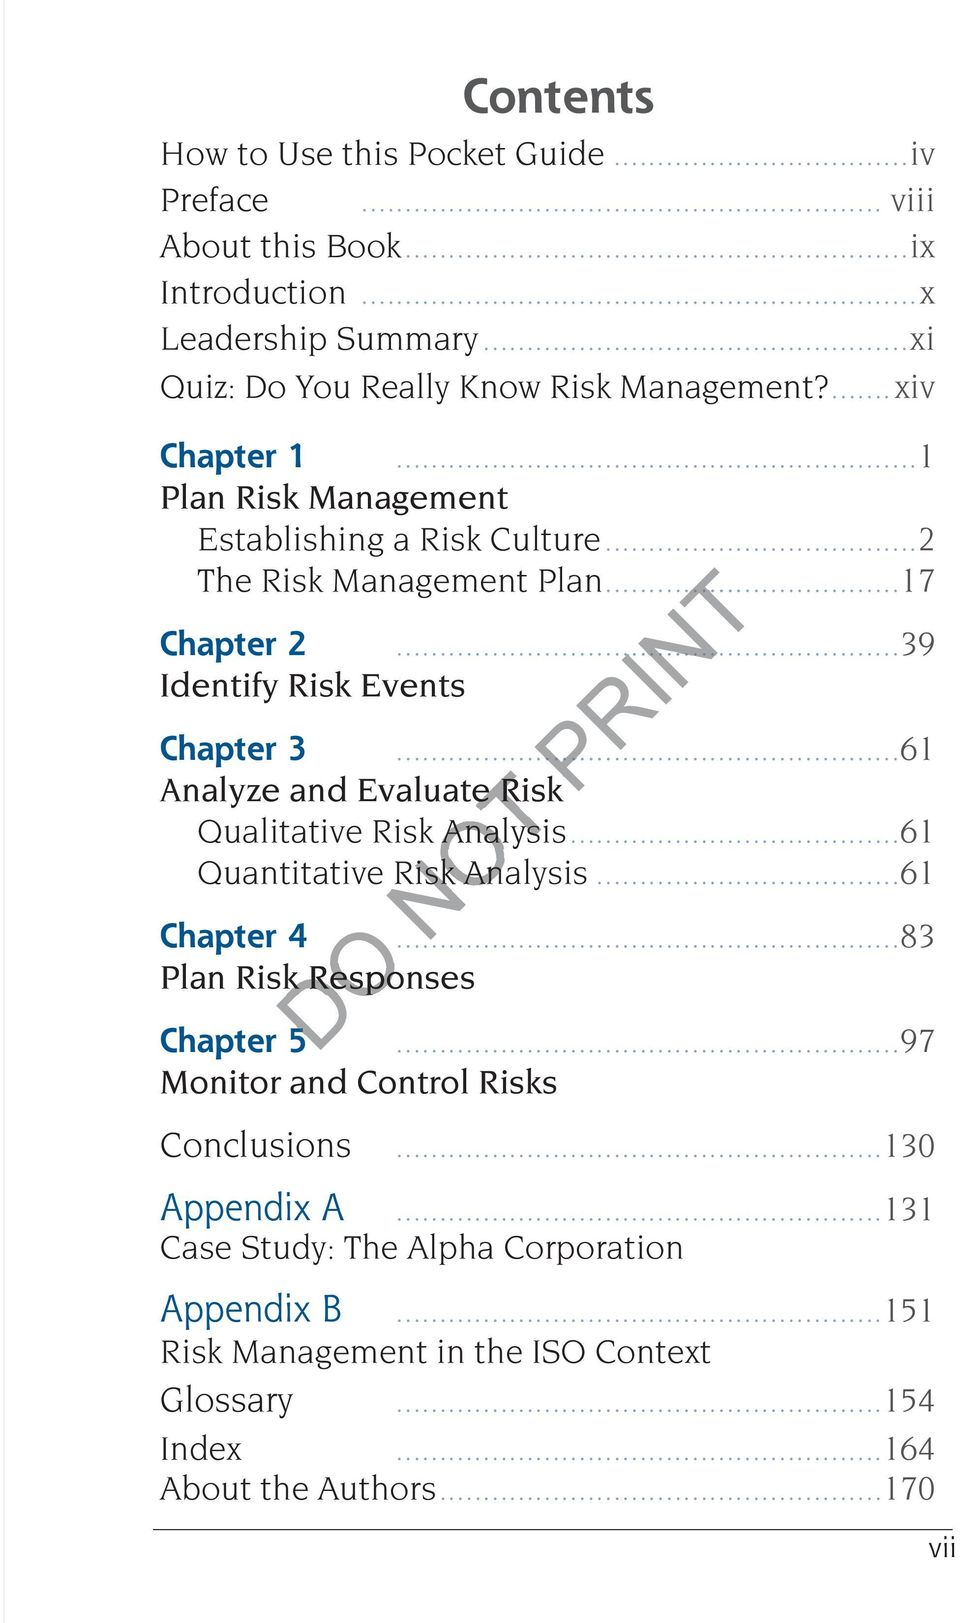 ..61 Analyze and Evaluate Risk Qualitative Risk Analysis...61 Quantitative Risk Analysis...61 Chapter 4...83 Plan Risk Responses DO NOT PRINT Chapter 5.